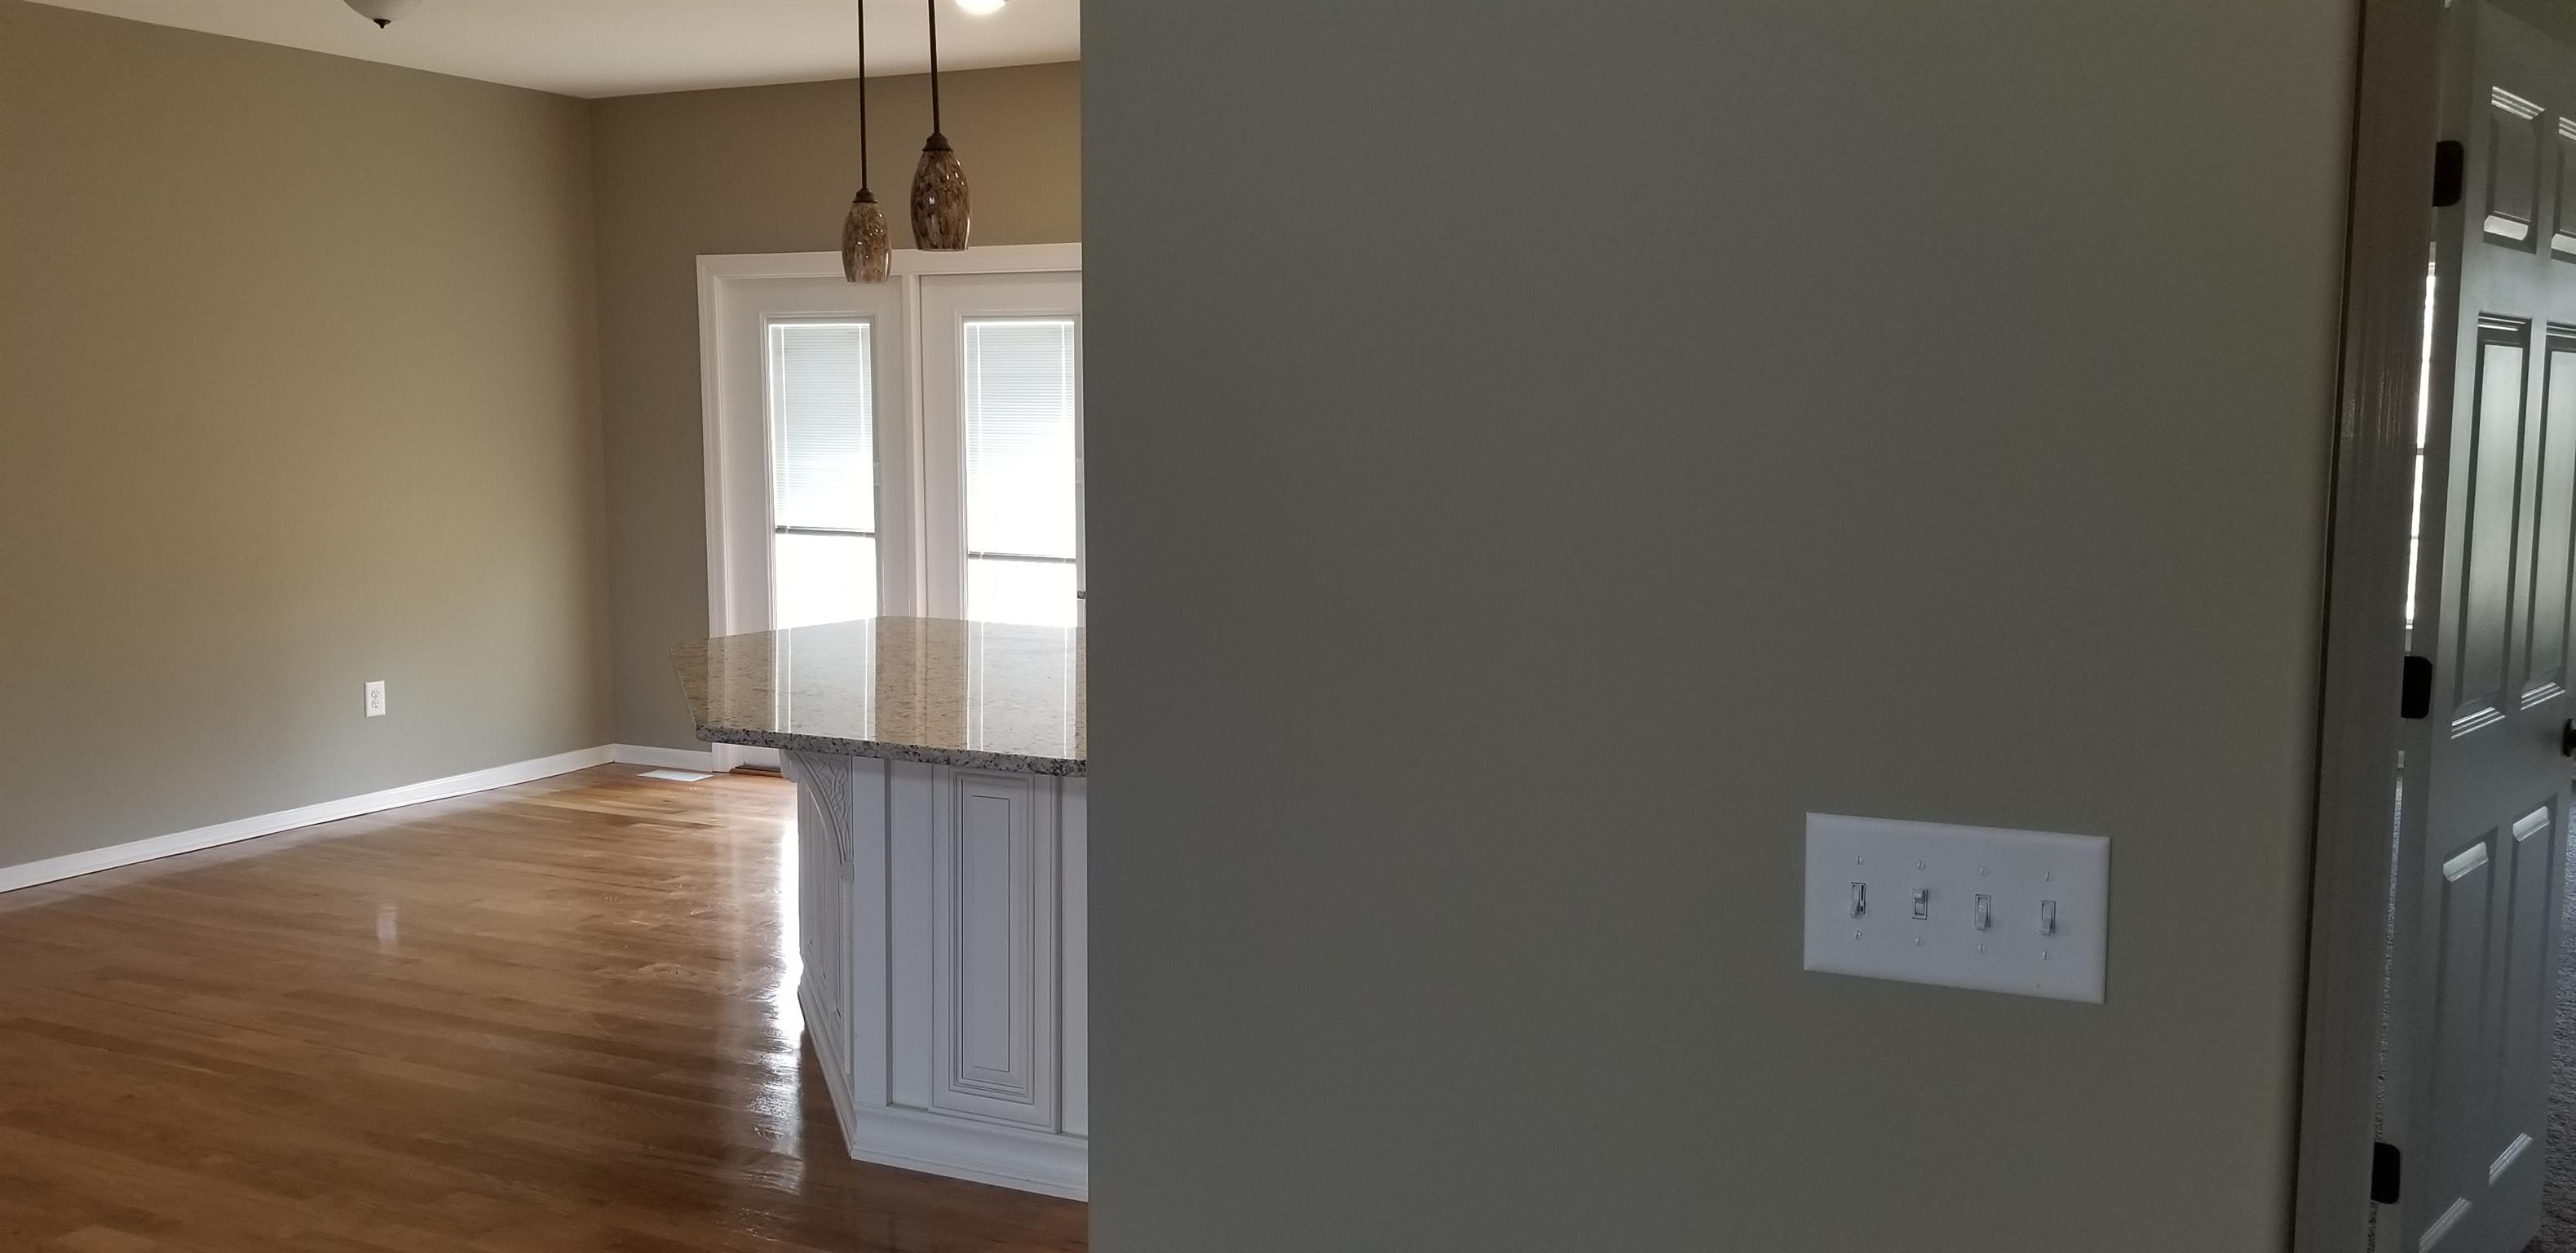 67 Lakeview Dr - photo 16